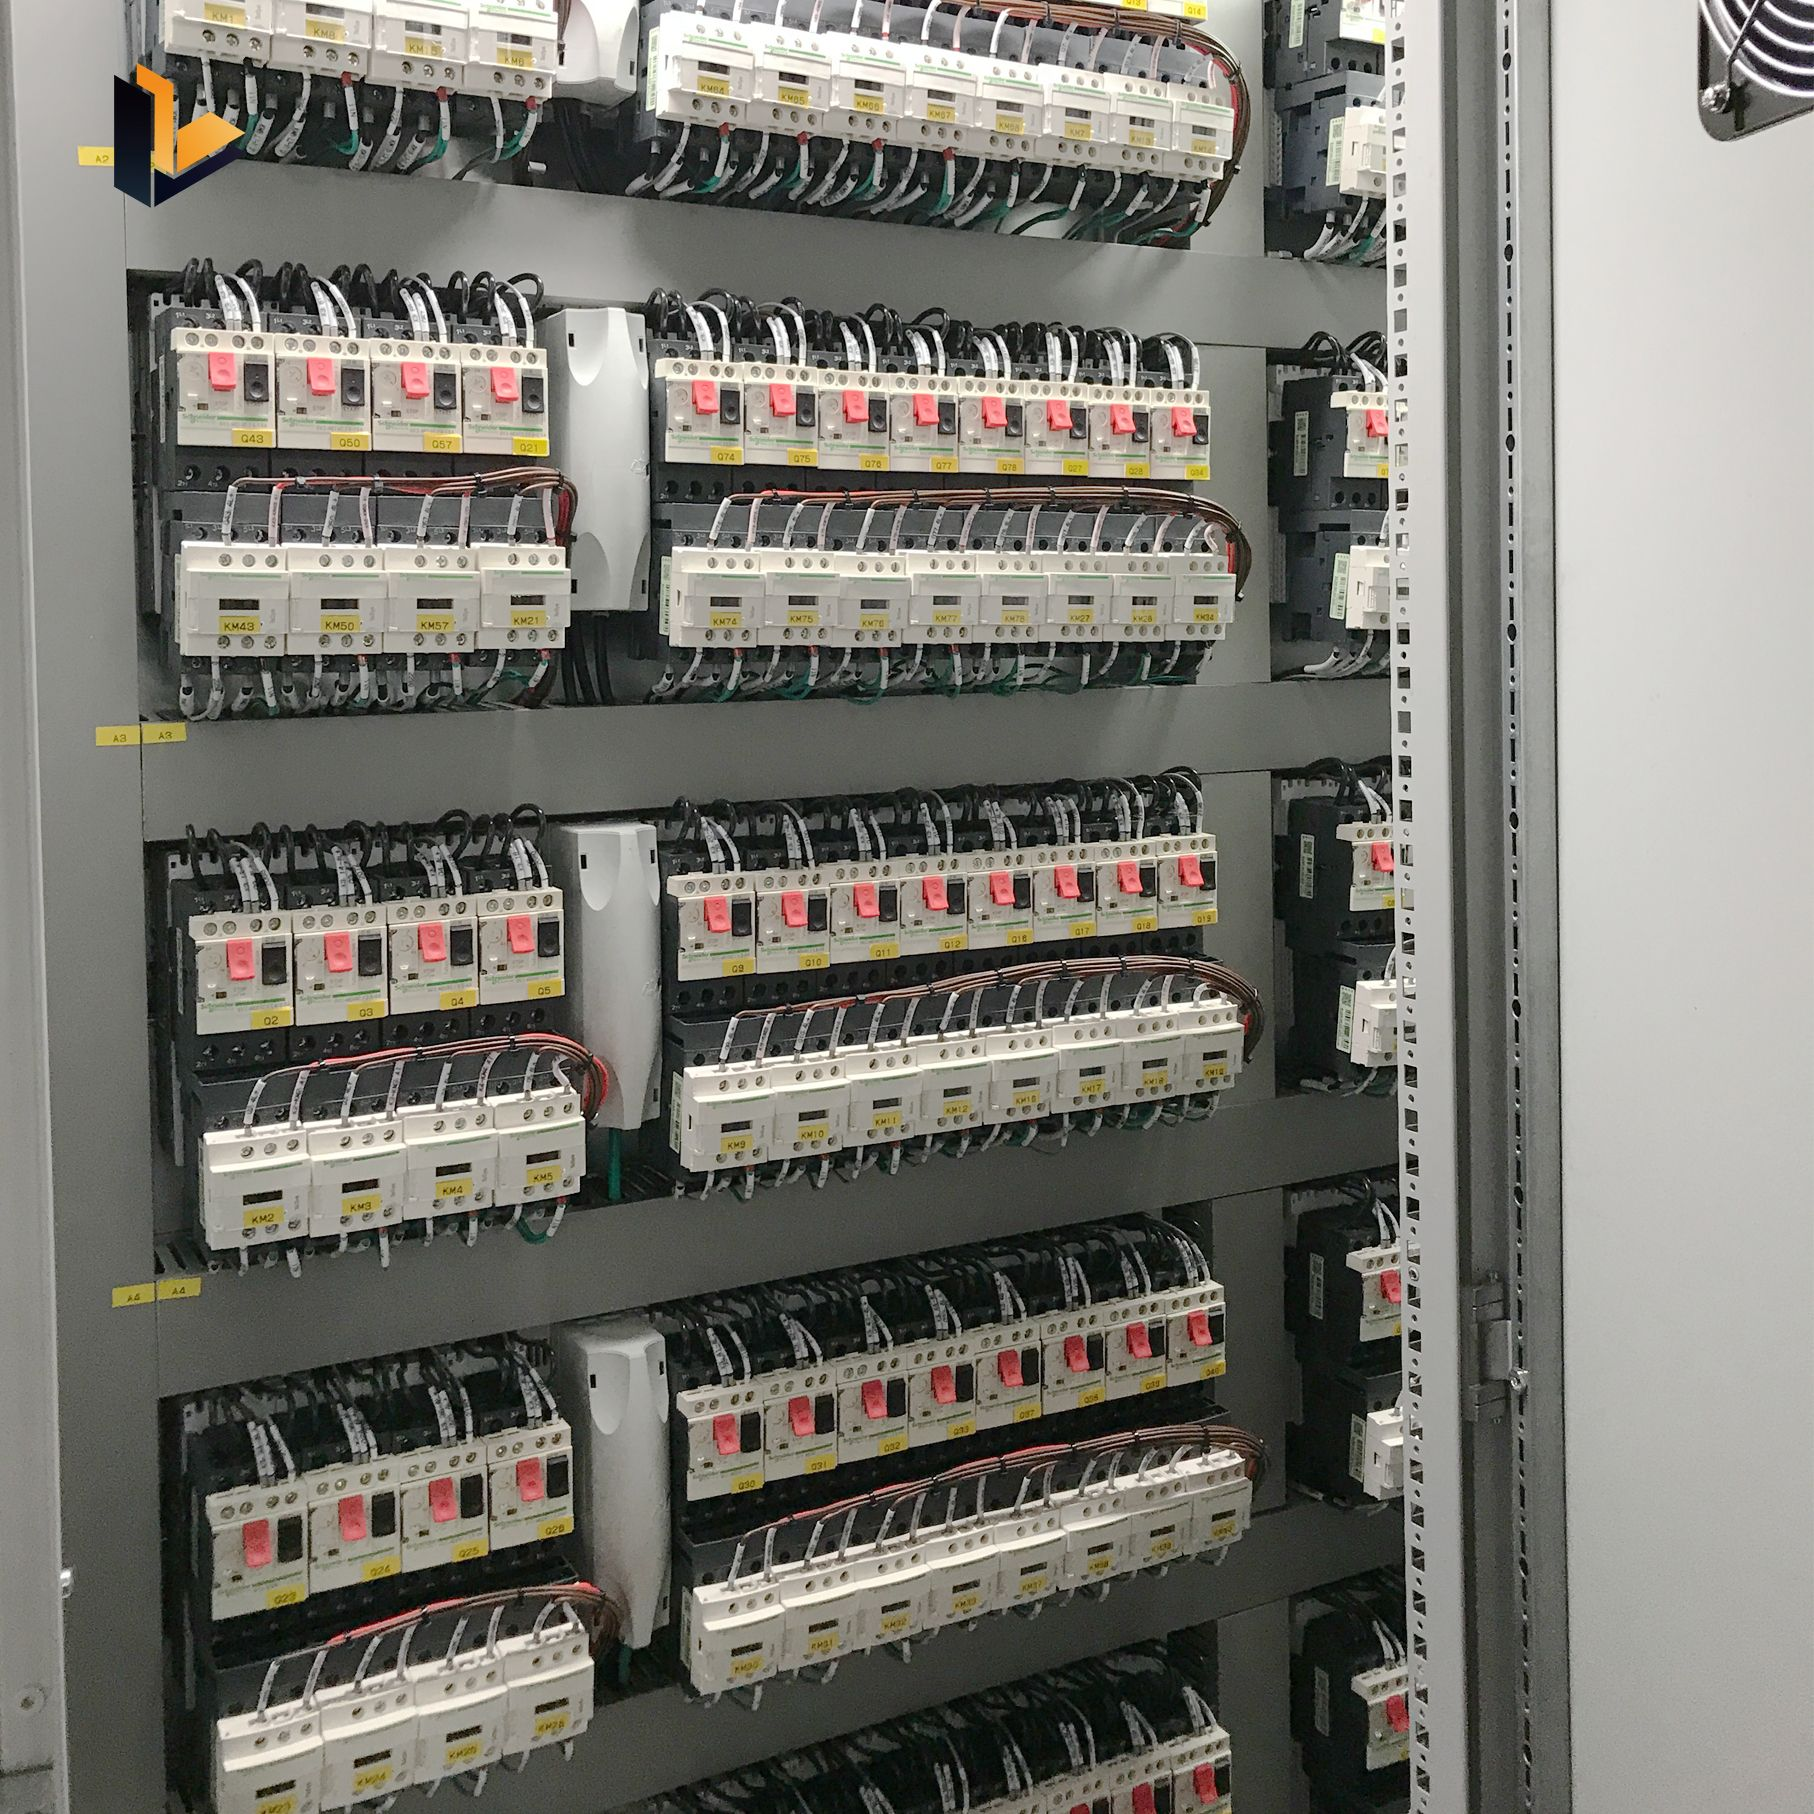 Electrical Plc Control Cabinet Human Machine Interface Network Switch Programmable Logic Controller